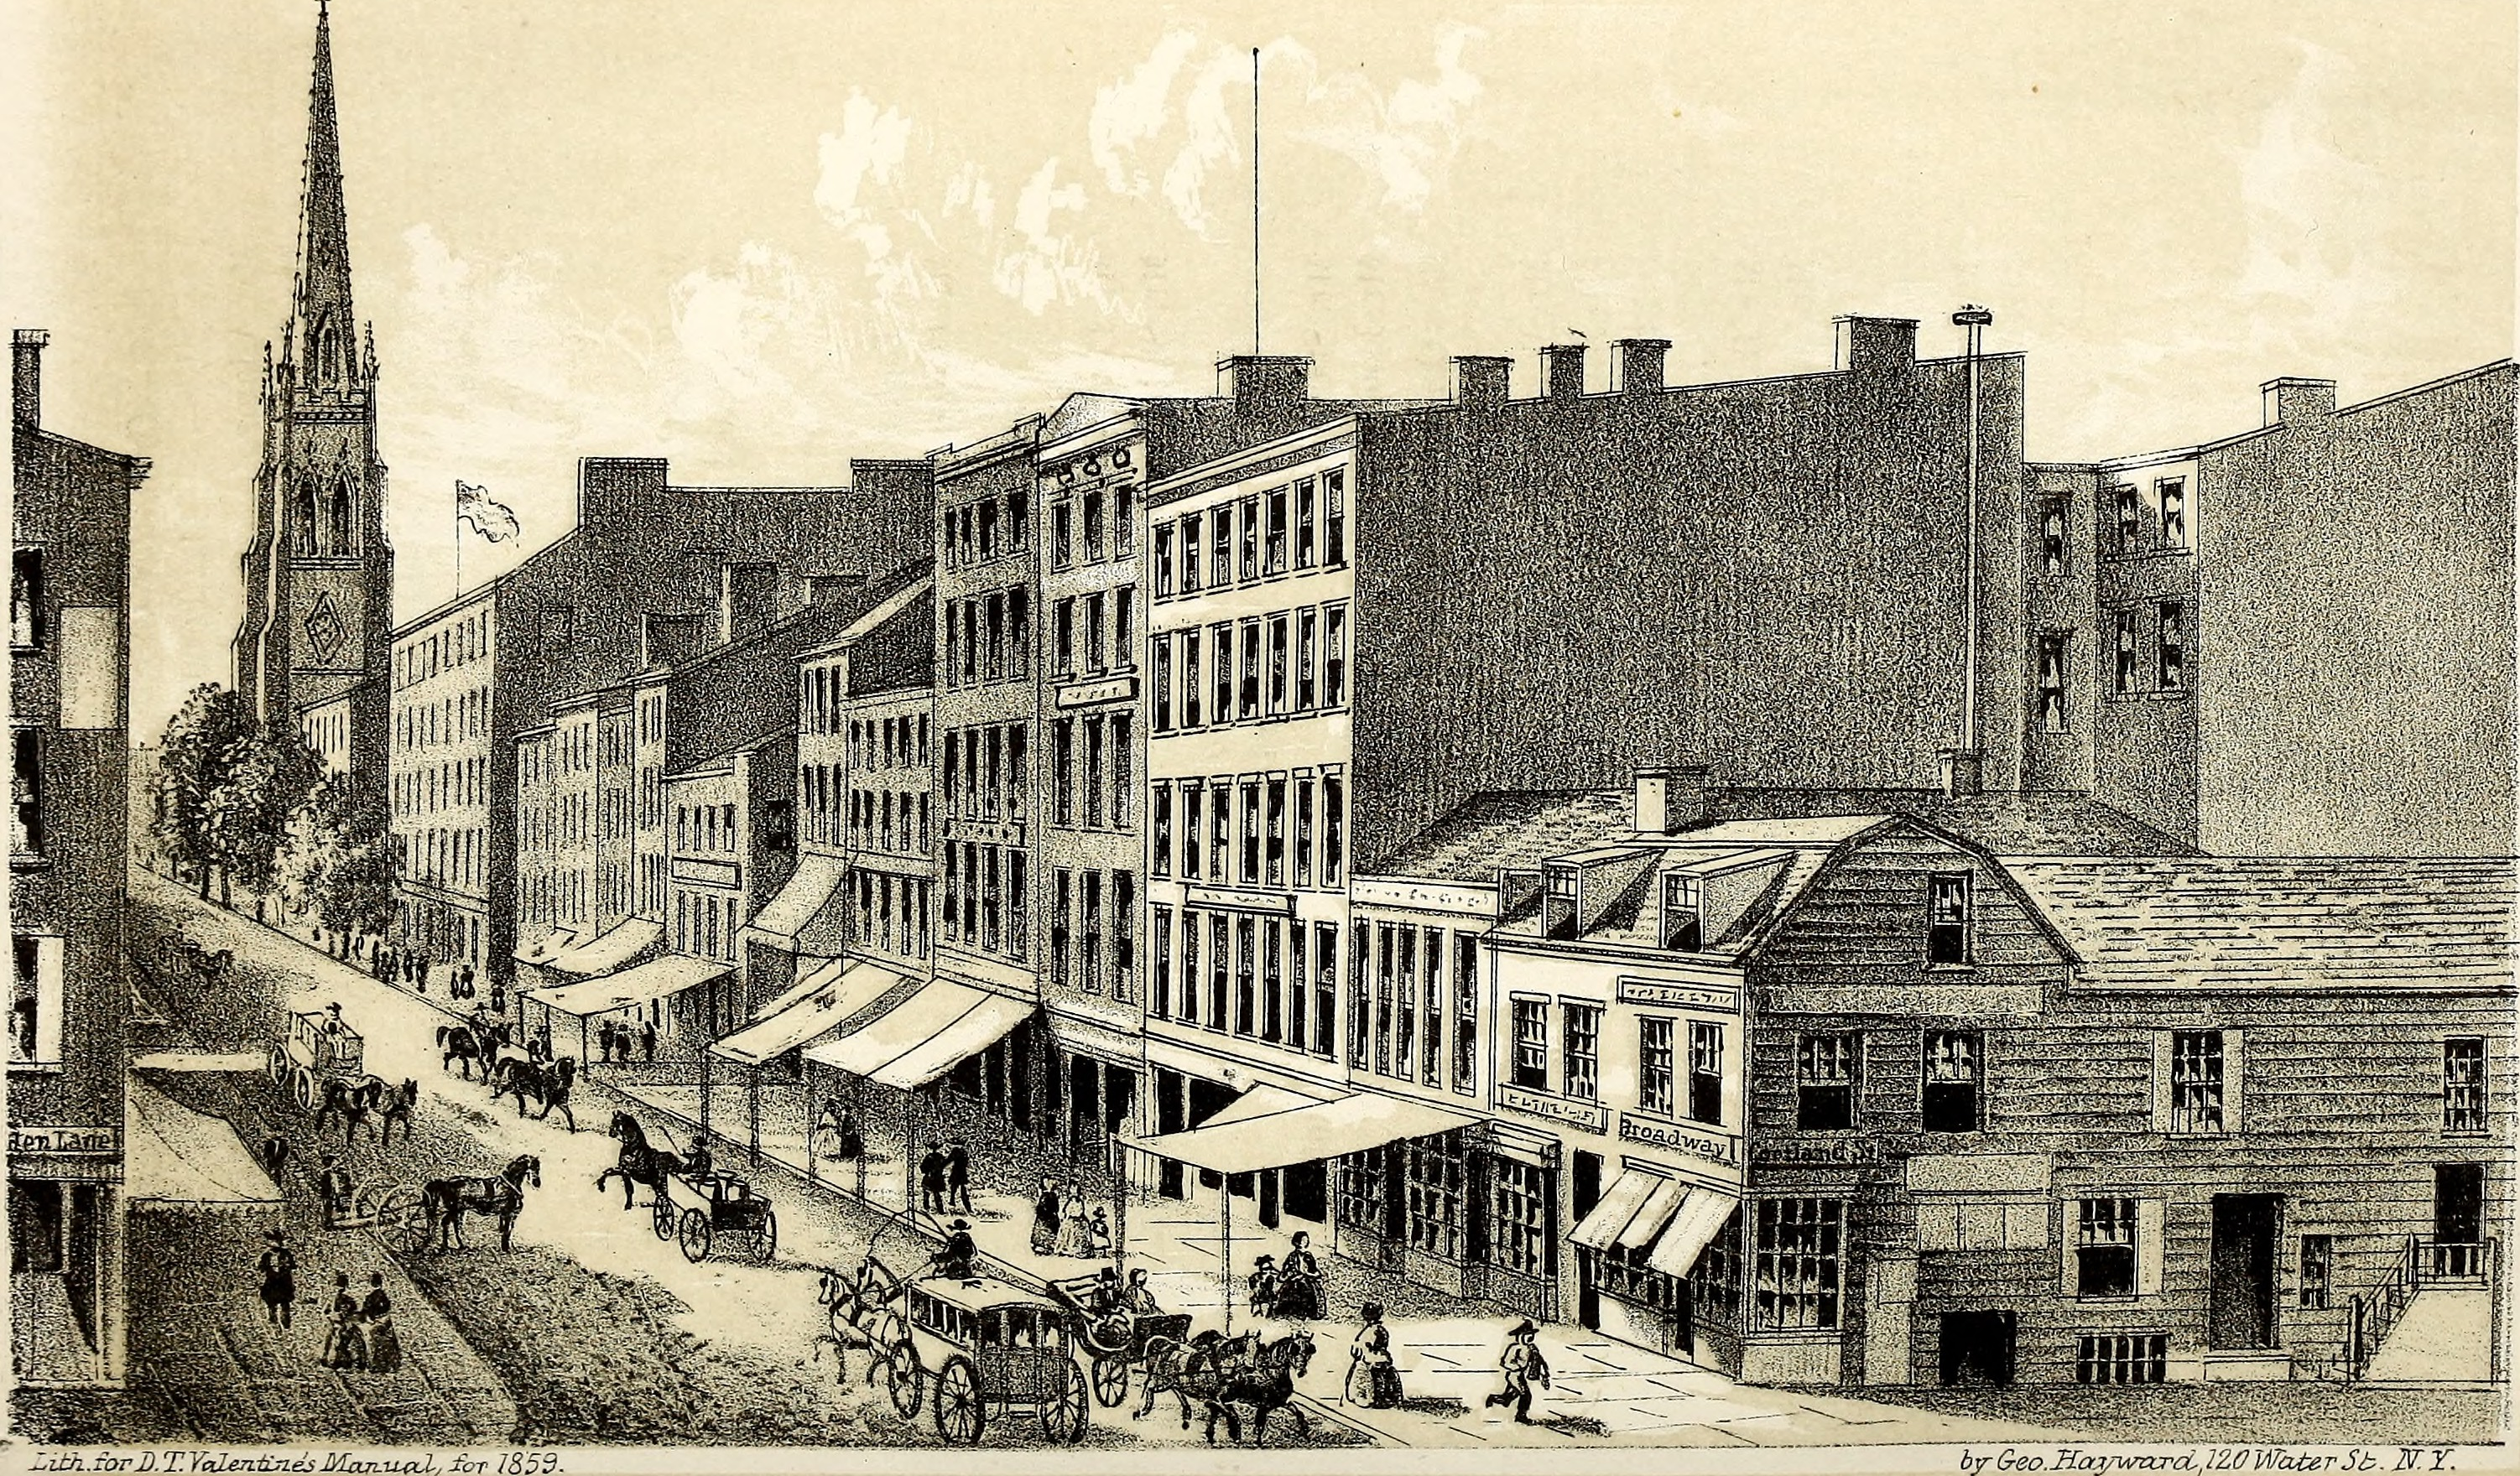 File:Manual of the corporation of the city of New York (1859) (